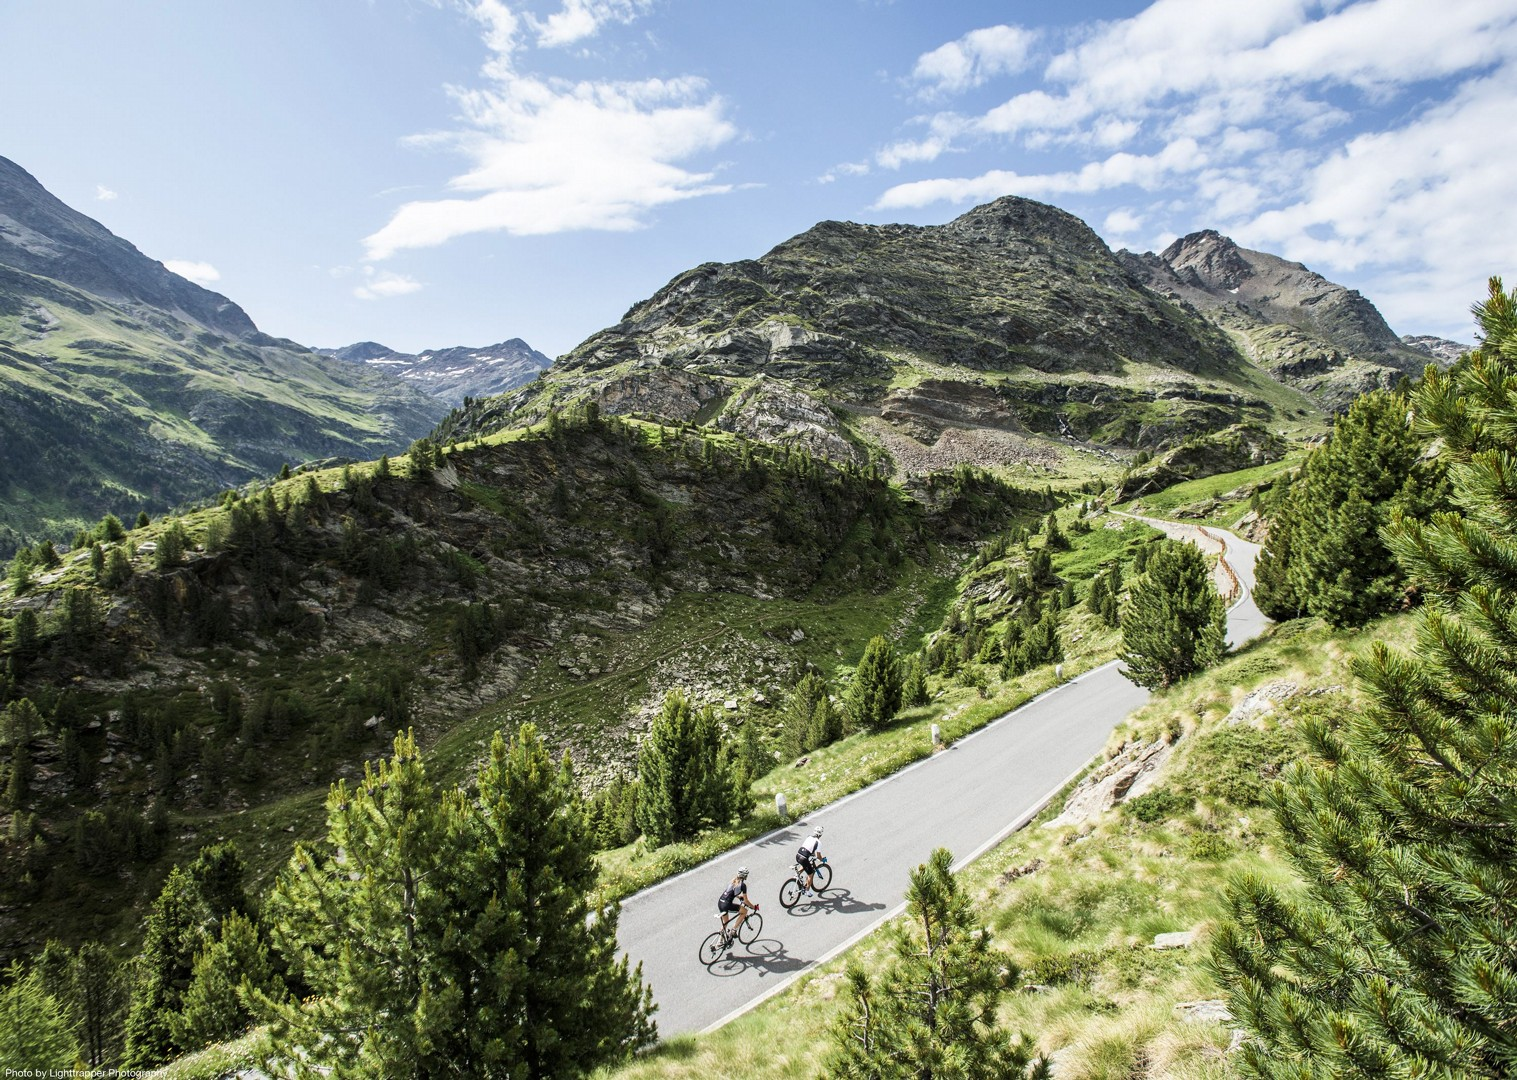 citta-alta-guided-road-cycling-holiday.jpg - Italy - Alps and Dolomites - Giants of the Giro - Guided Road Cycling Holiday - Road Cycling